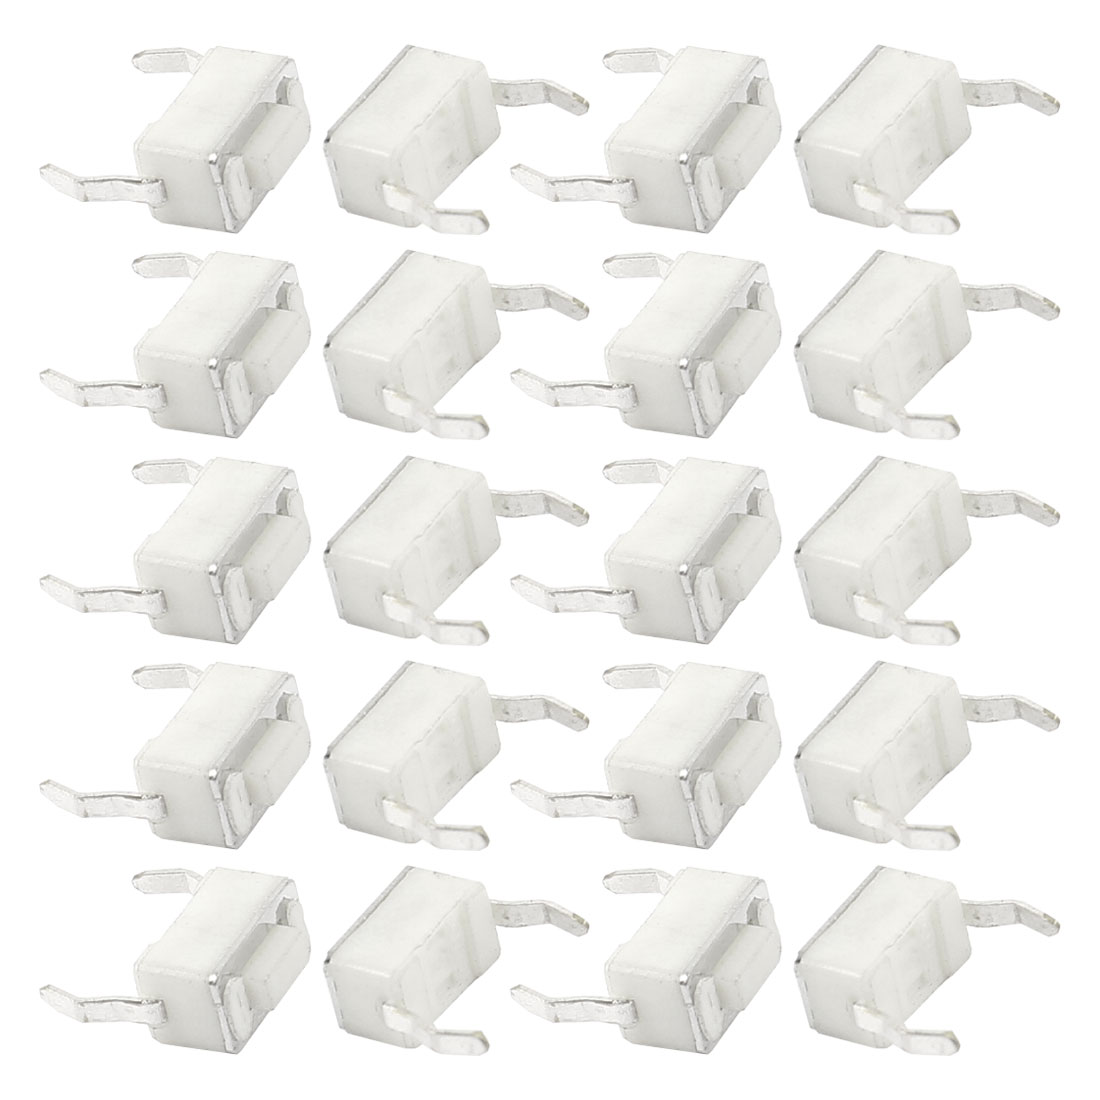 20 Pcs PCB Mount Momentary SPST Tactile Tact Switch White 6x3x4.3mm